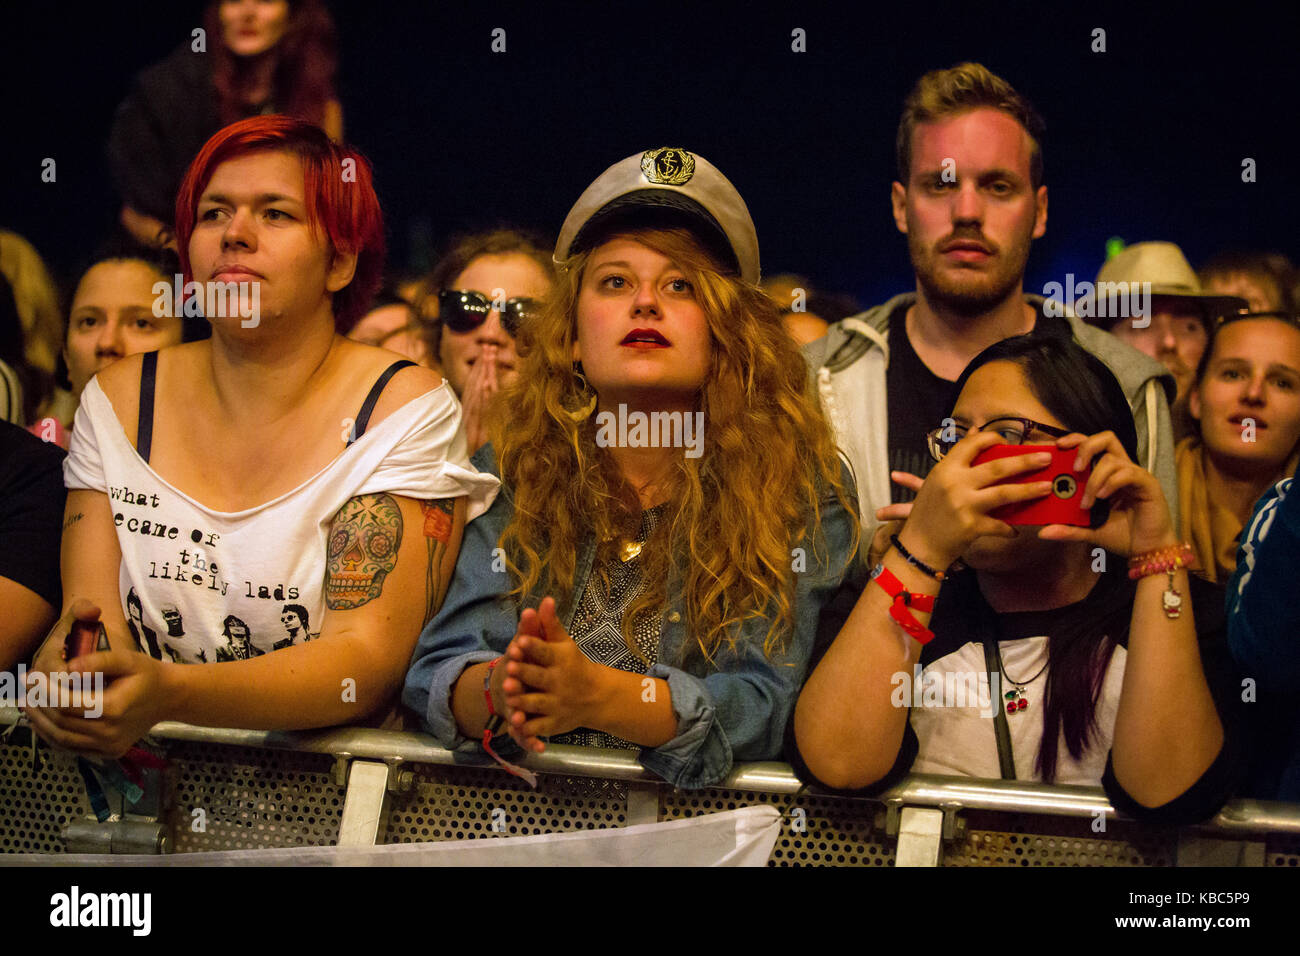 Festival goers and music fans attend a concert with the British band The Libertiens who performs at the music festival - Stock Image